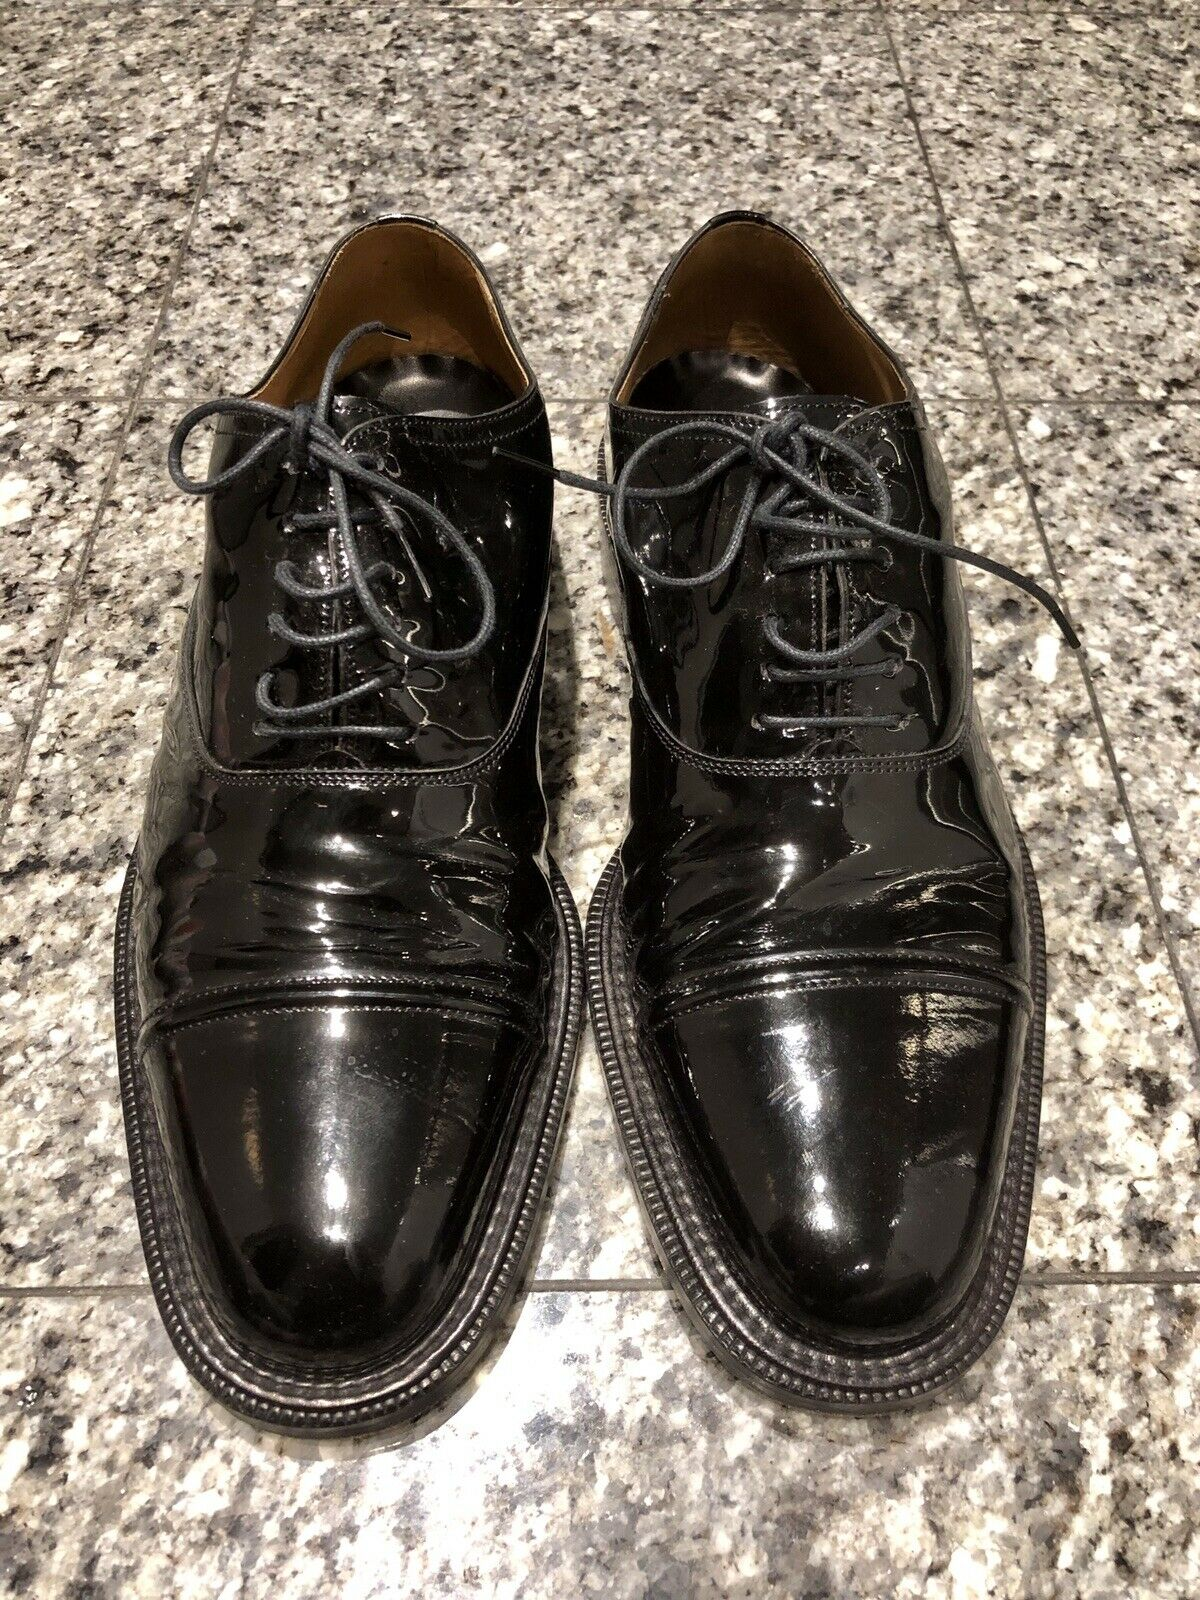 To Boot New York Patent Leather Men's Oxford shoes